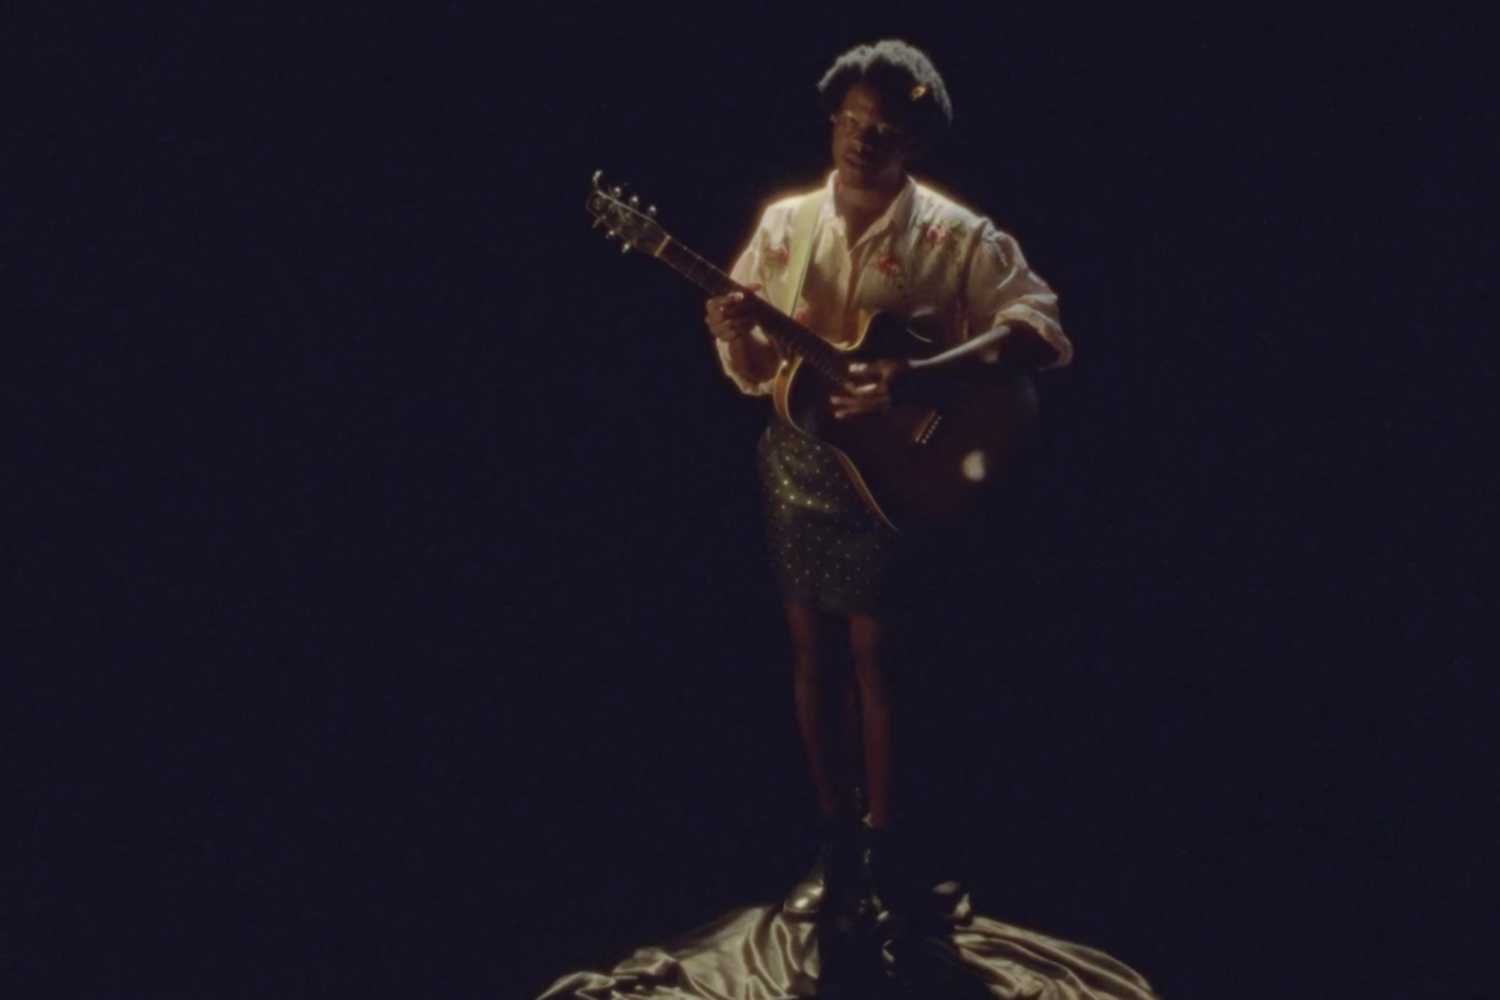 Shamir shares 'Larry Clark' video